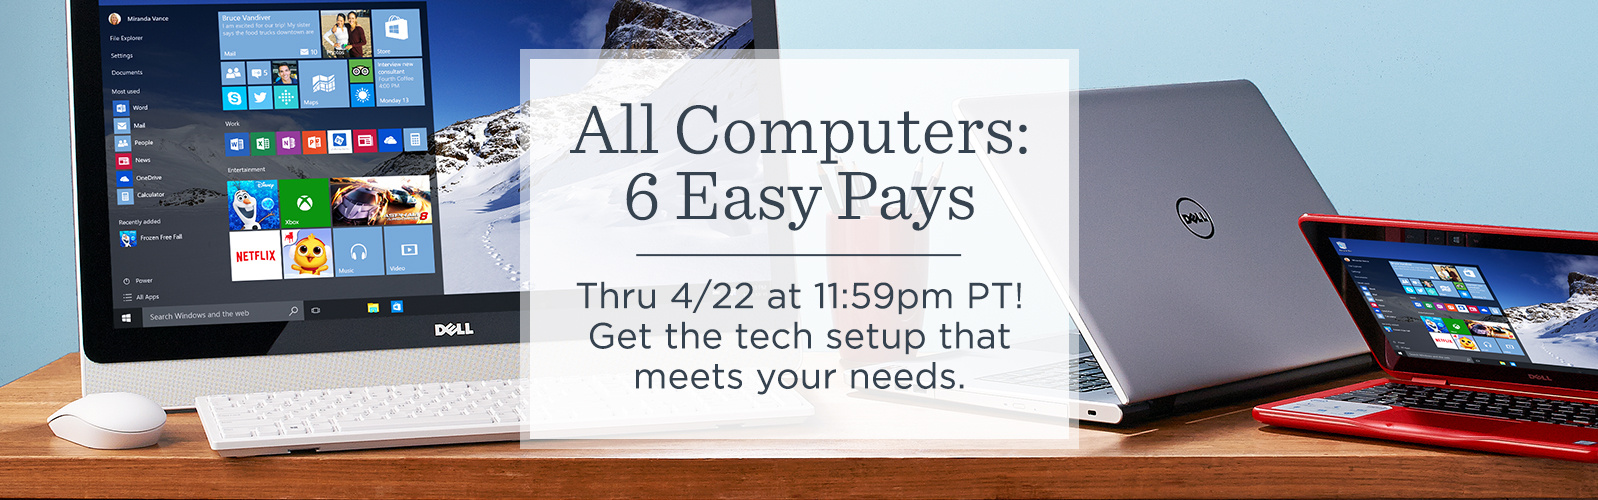 All Computers: 6 Easy Pays — Thru 4/22 at 11:59pm PT! Get the tech setup that meets your needs.